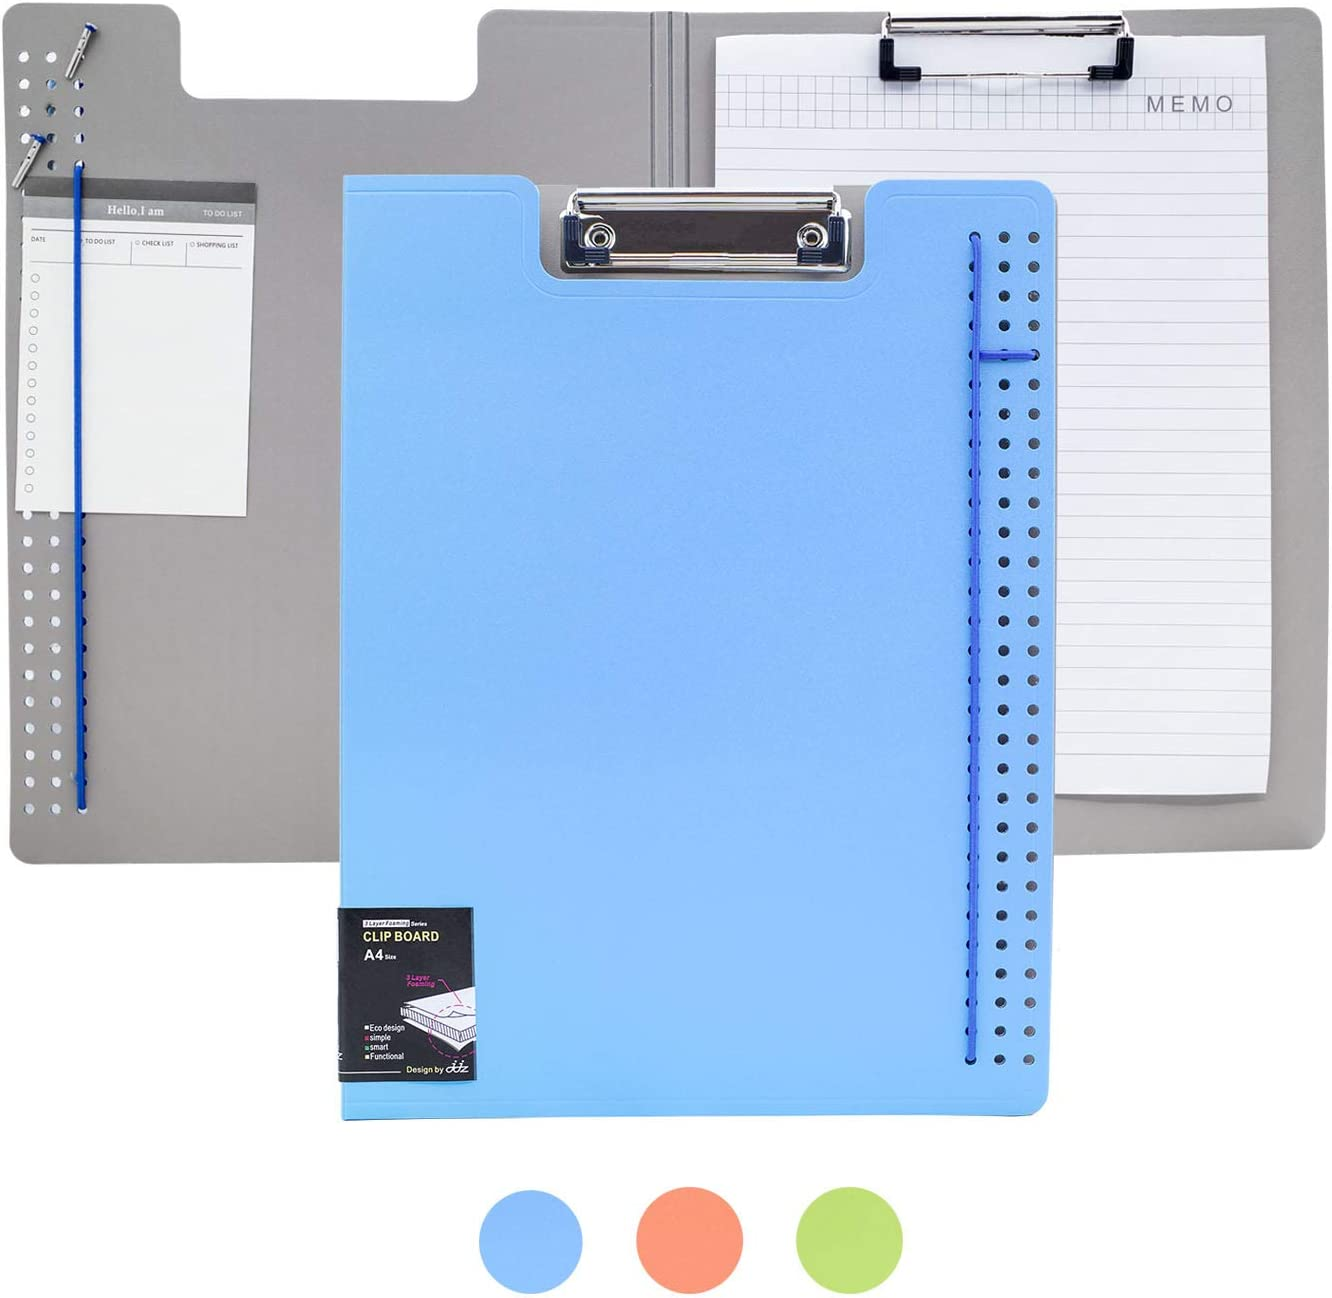 Foldable Clipboard, Enclosed Clipboards Folio,360 Degree Flip Folio Clipfolio,Closing Clipboard Padfolio, Used for Nurse Clipboard and Office Arch Clipboard,Colorful Covered Clipboard. (Blue, Upper)